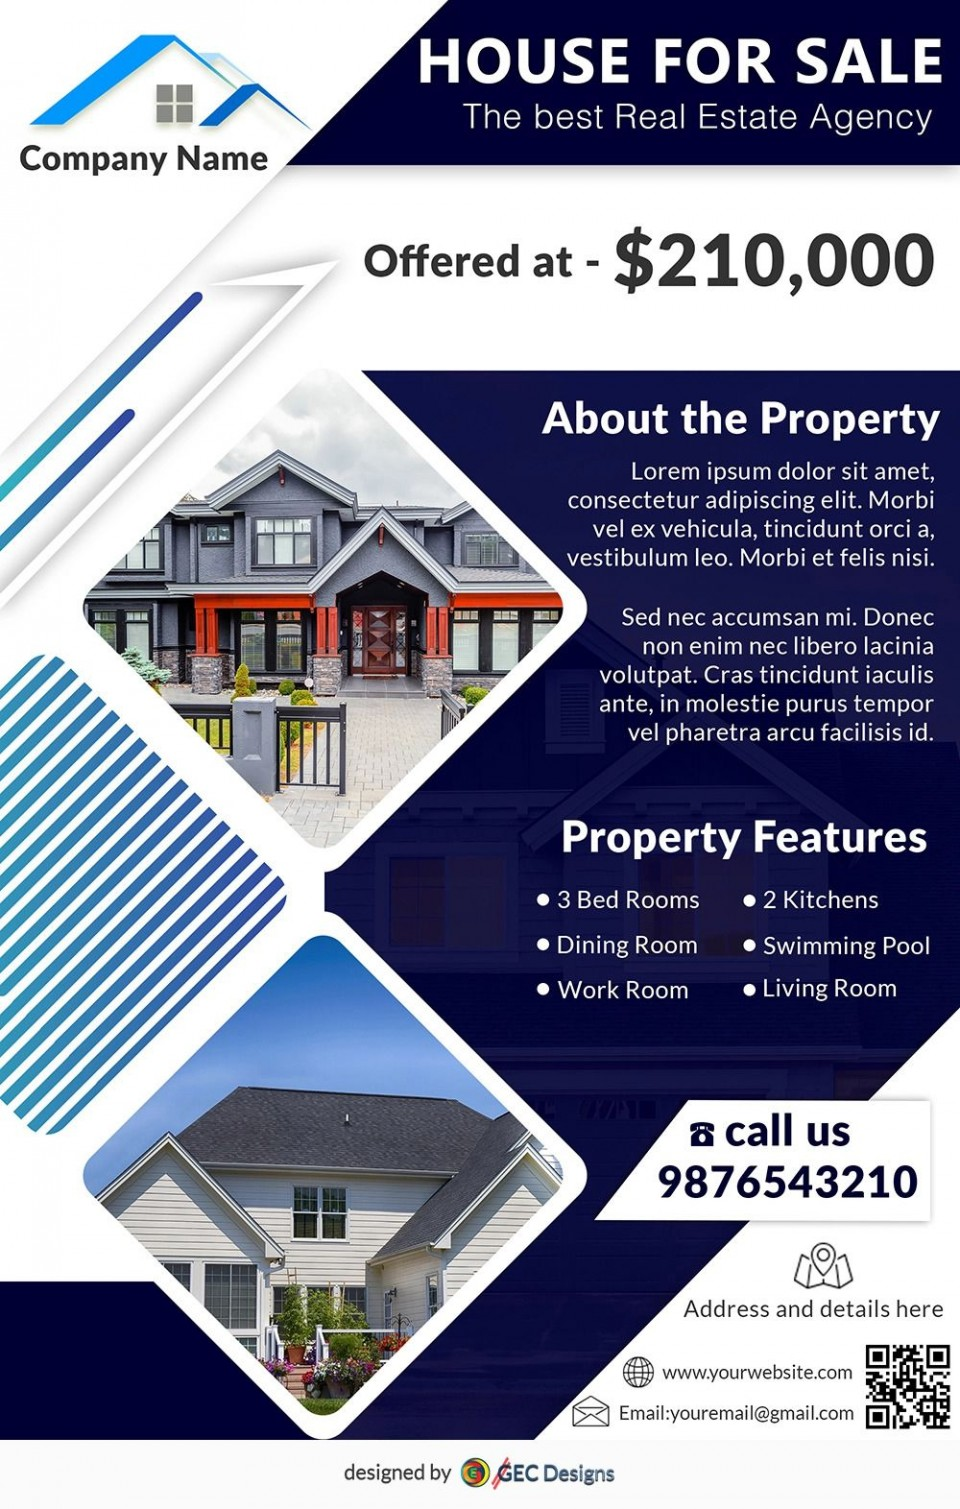 006 Archaicawful House For Sale Flyer Template Highest Clarity  Free Real Estate Example By Owner960